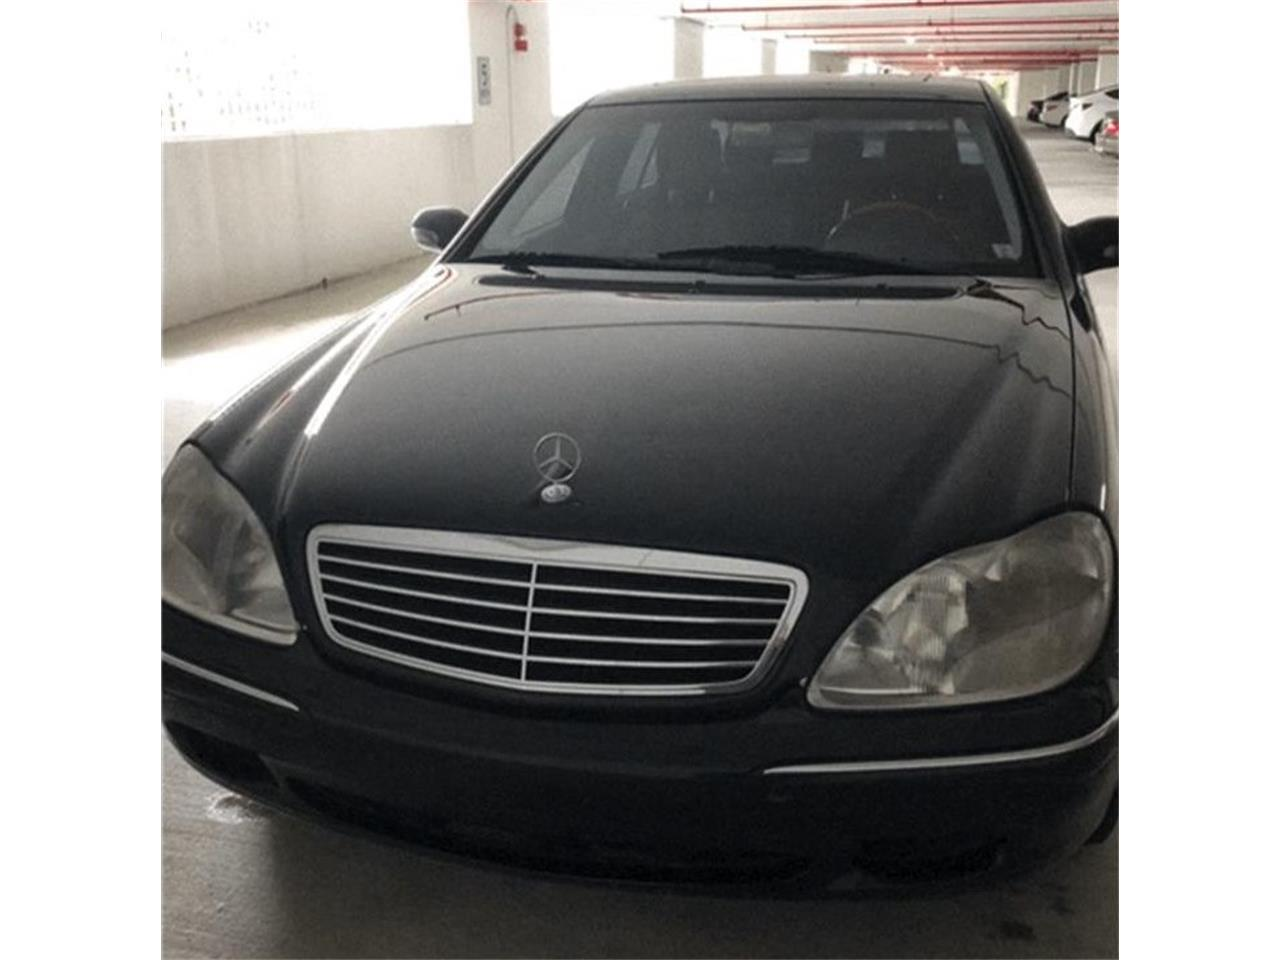 2000 Mercedes-Benz S500 (CC-1417041) for sale in SUNNY ISL BCH, Florida